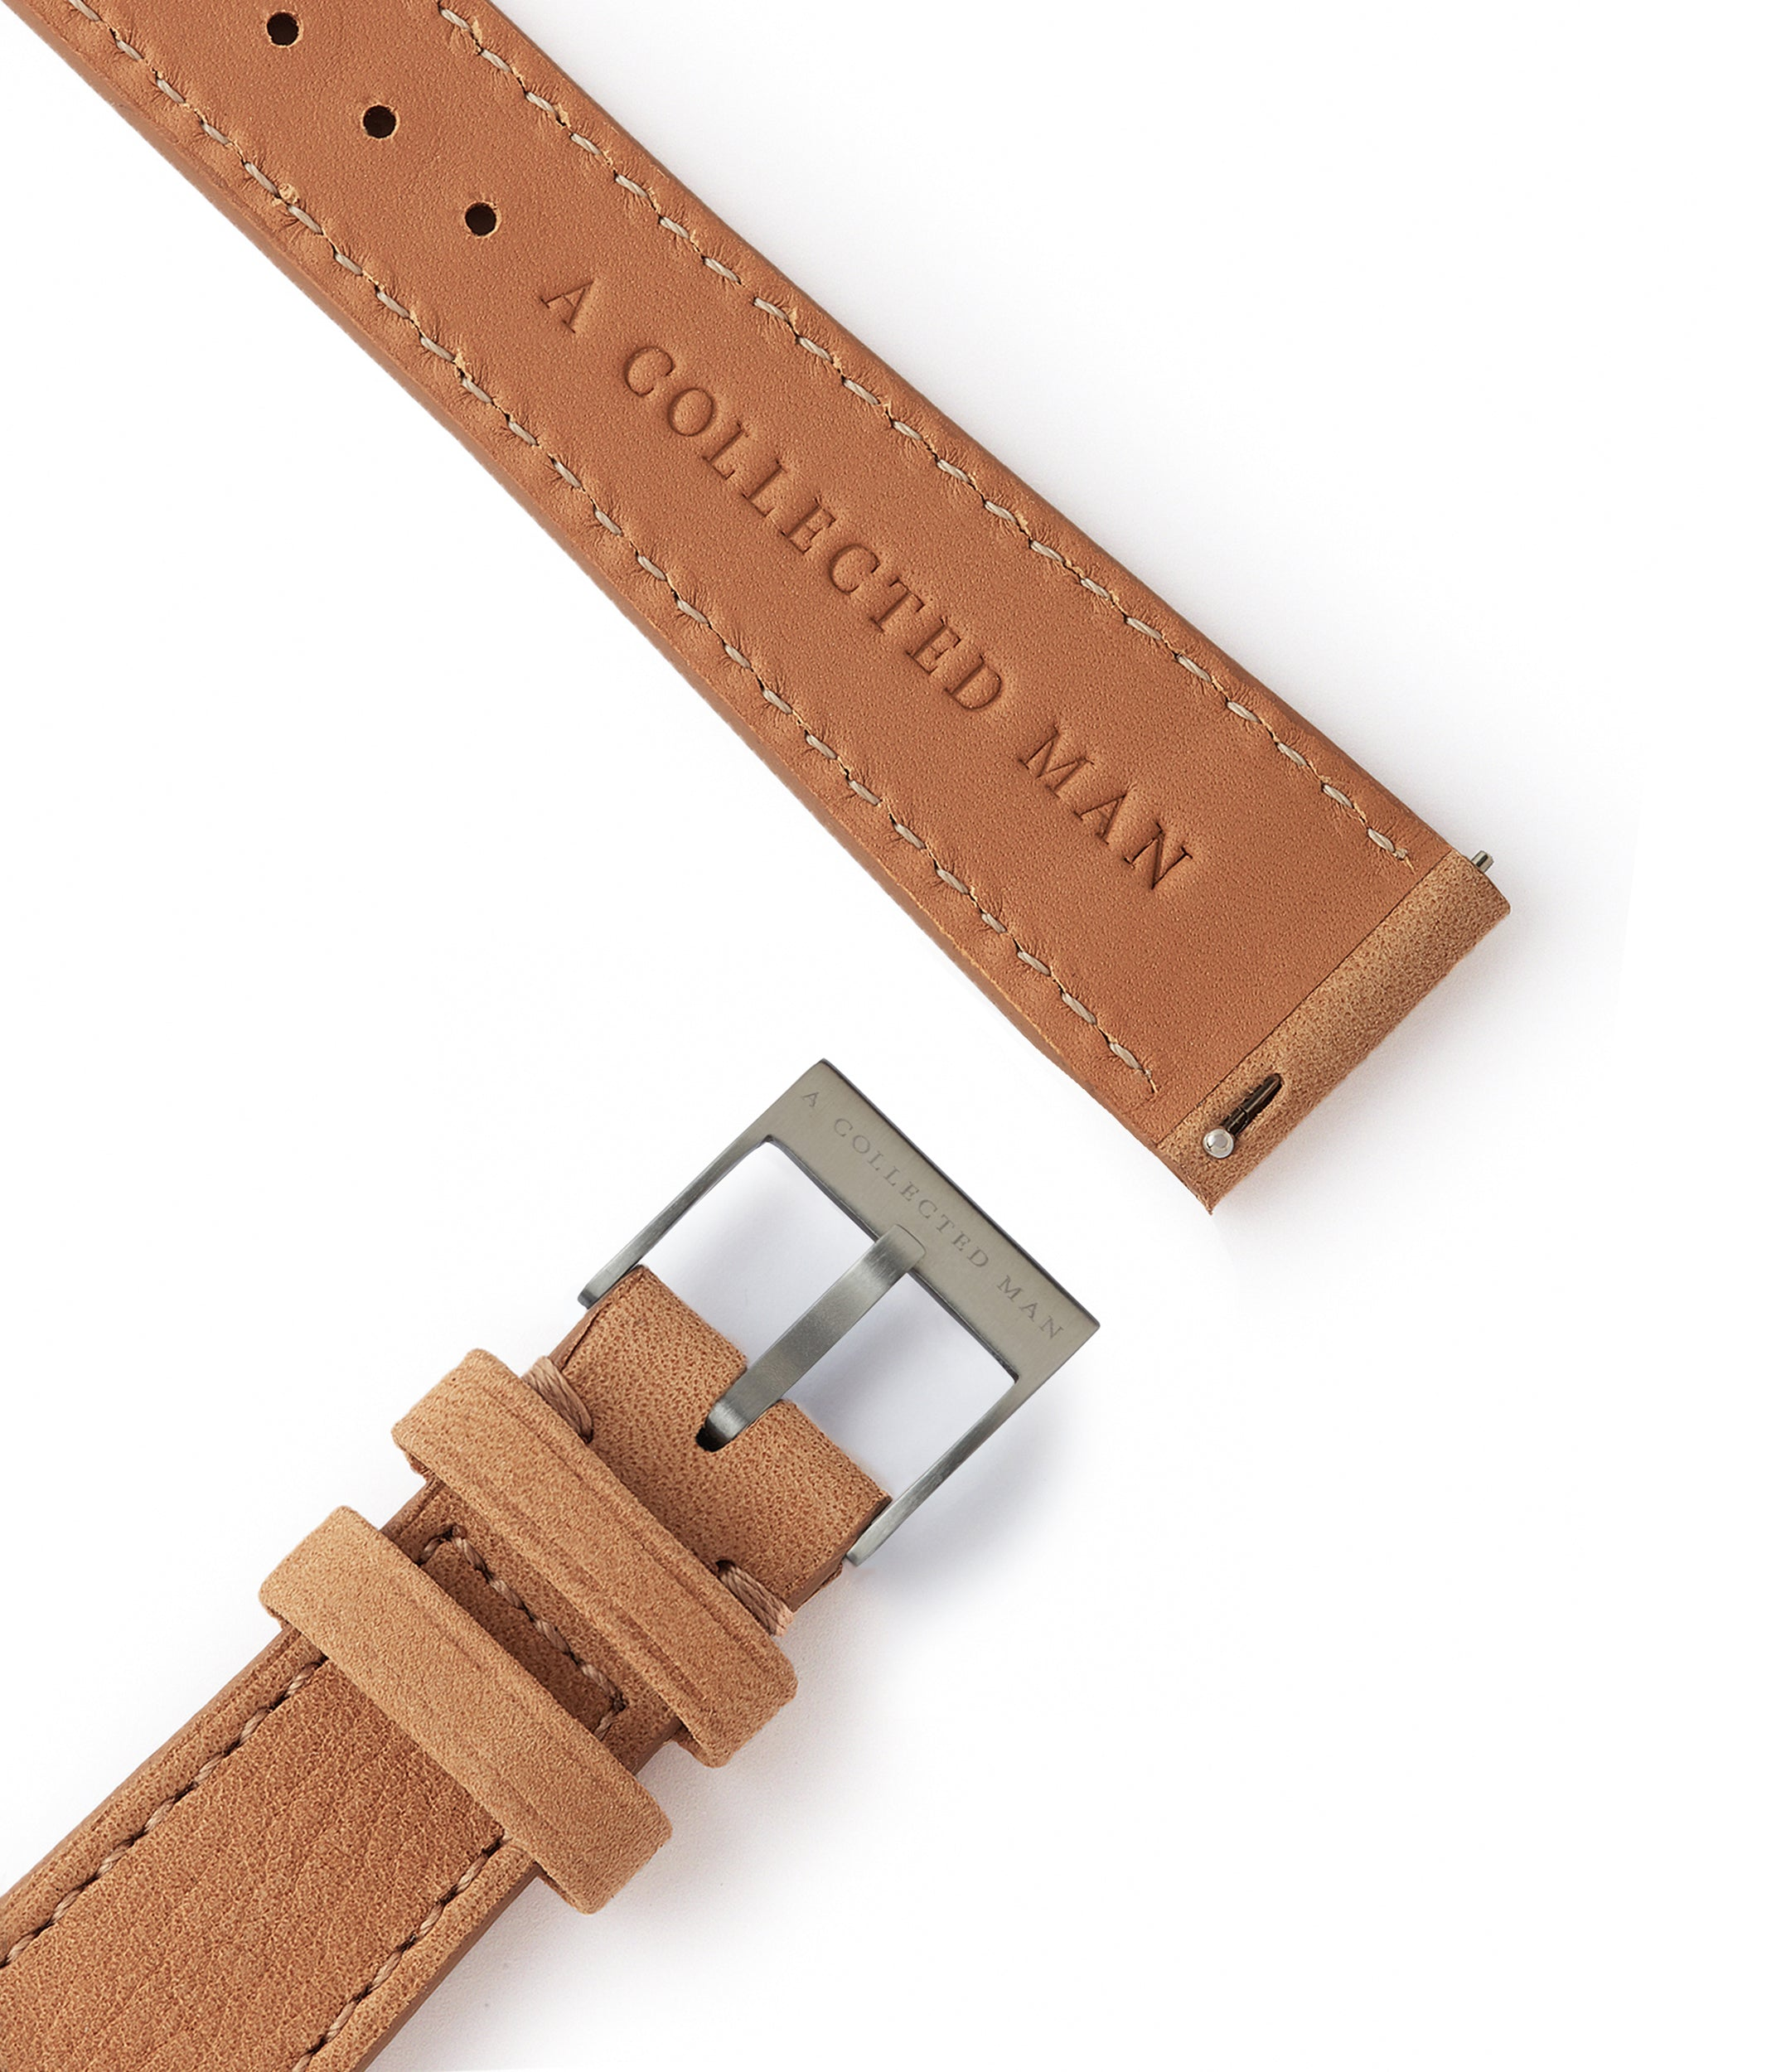 light tan leather nubuck watch strap quick-release springbars Carcassonne Molequin for sale order online at A Collected Man London